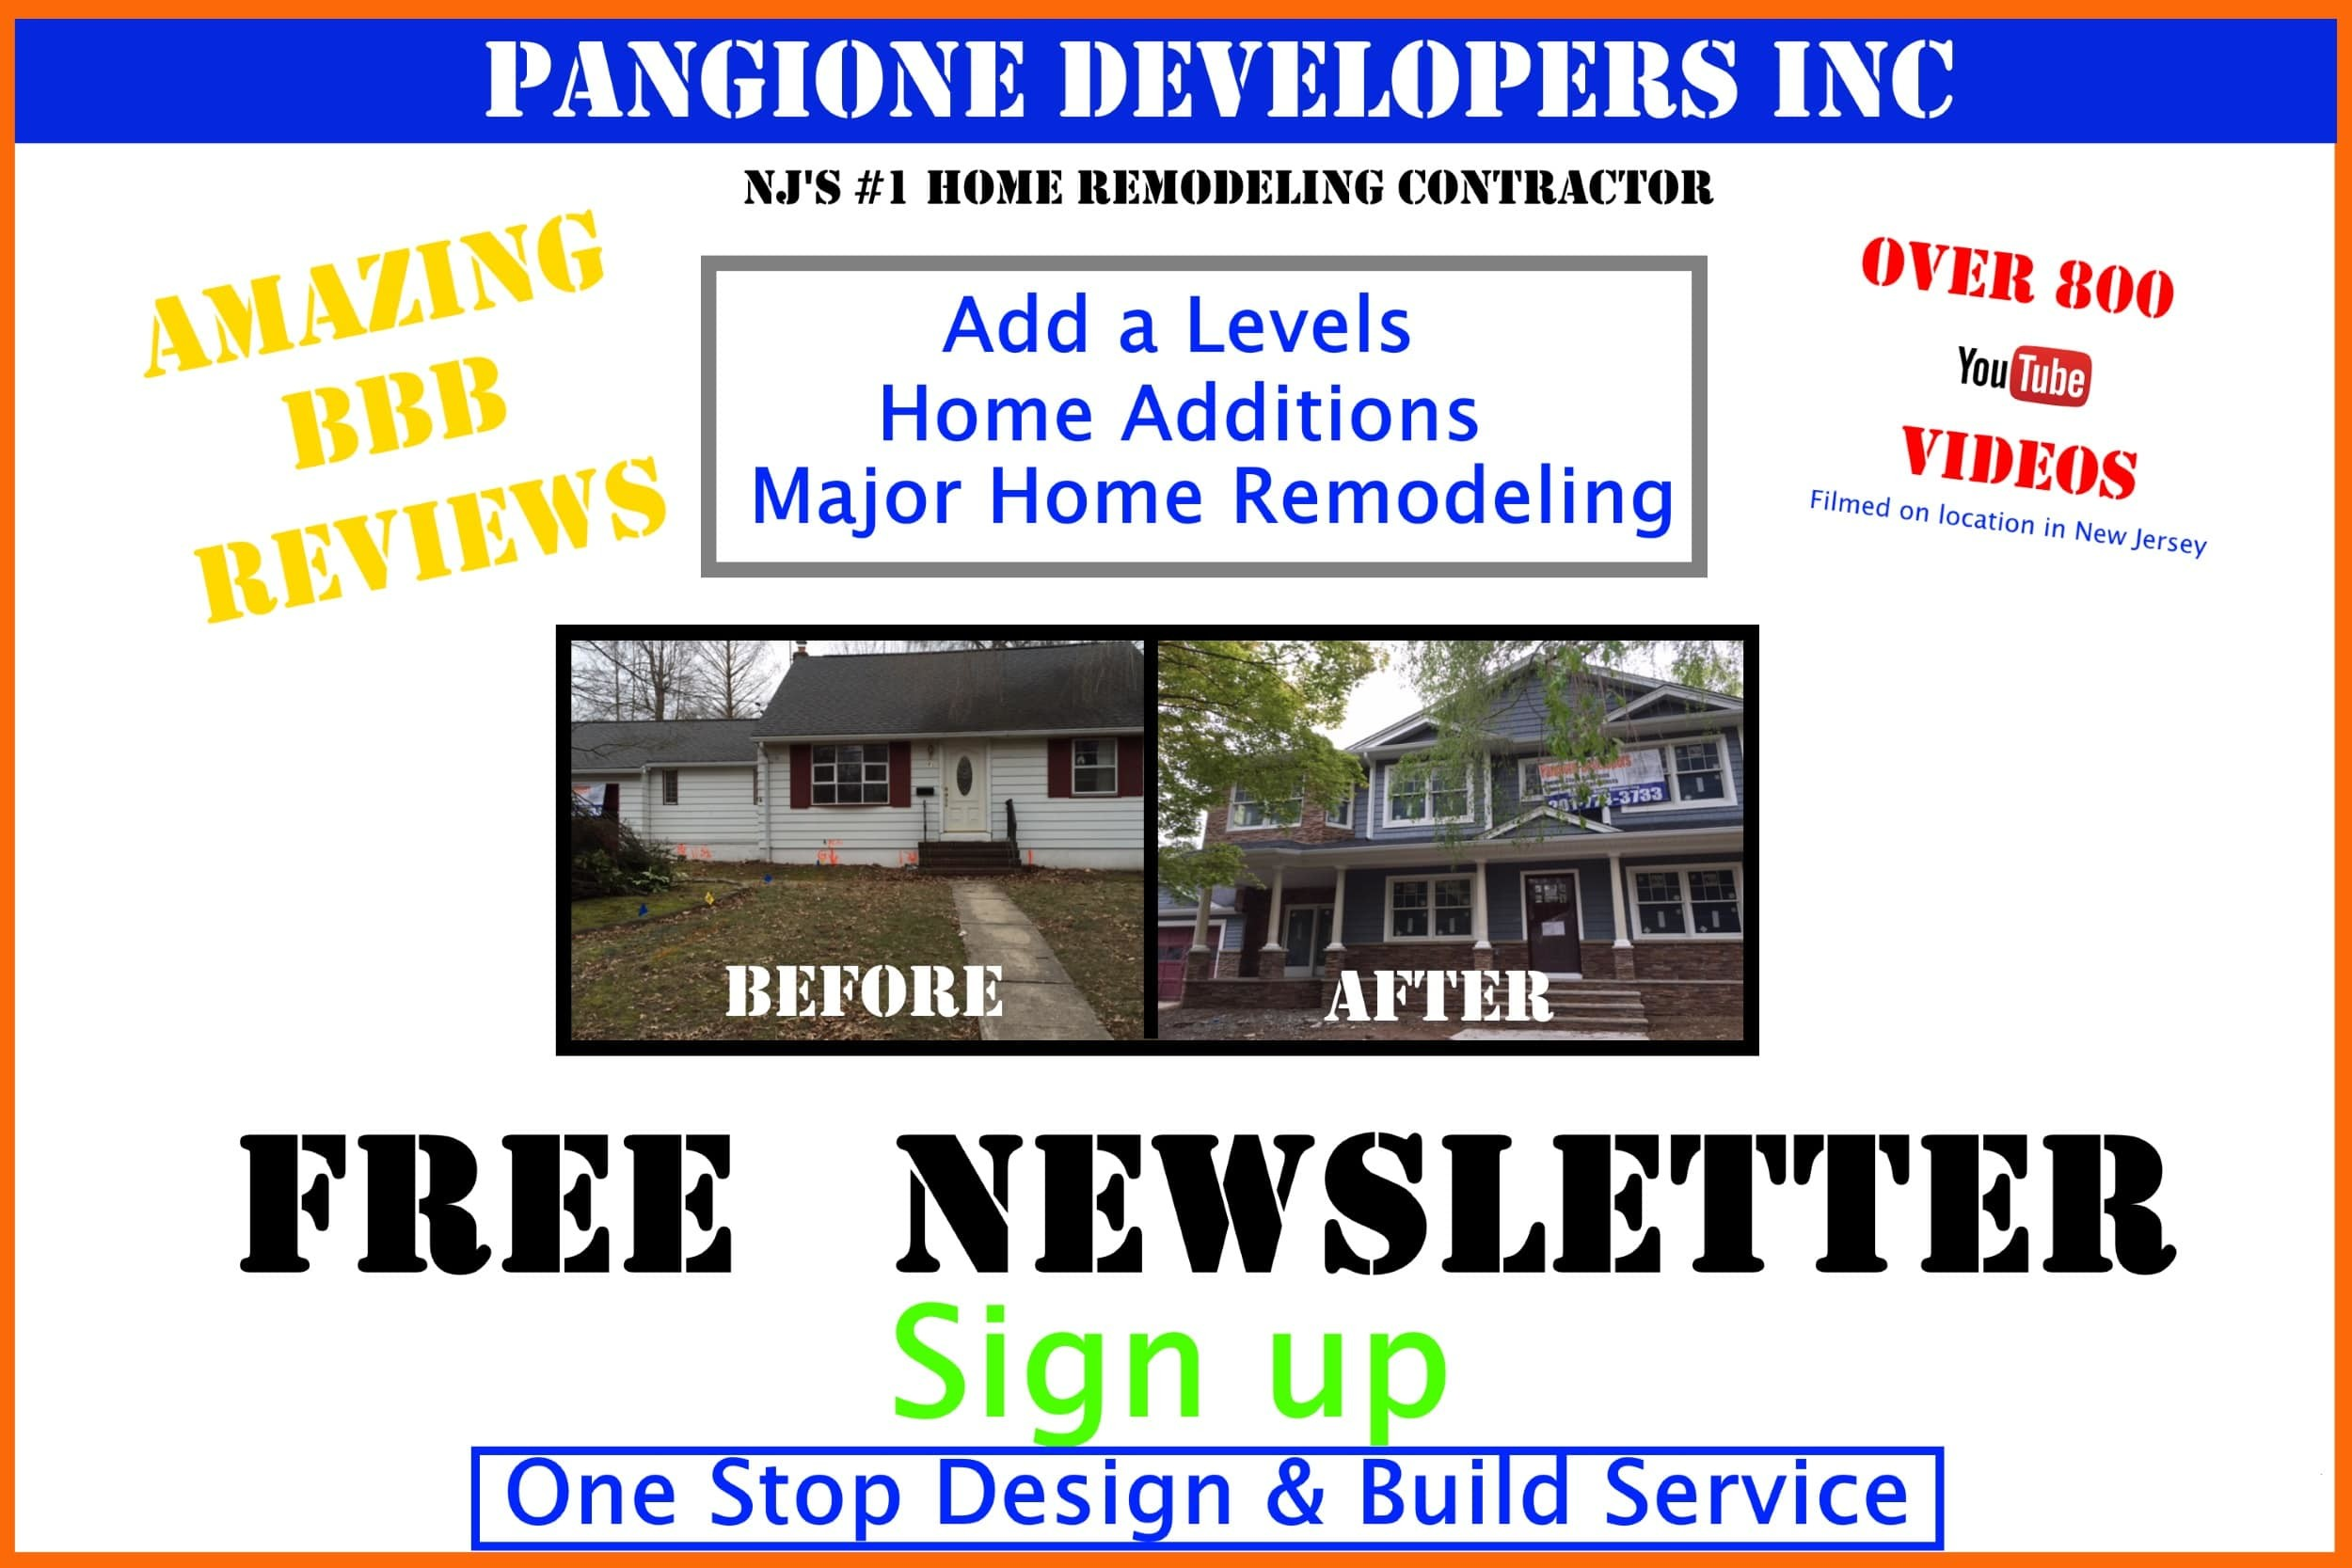 general-contractors-in-bergen-county-new-jersey-smaller